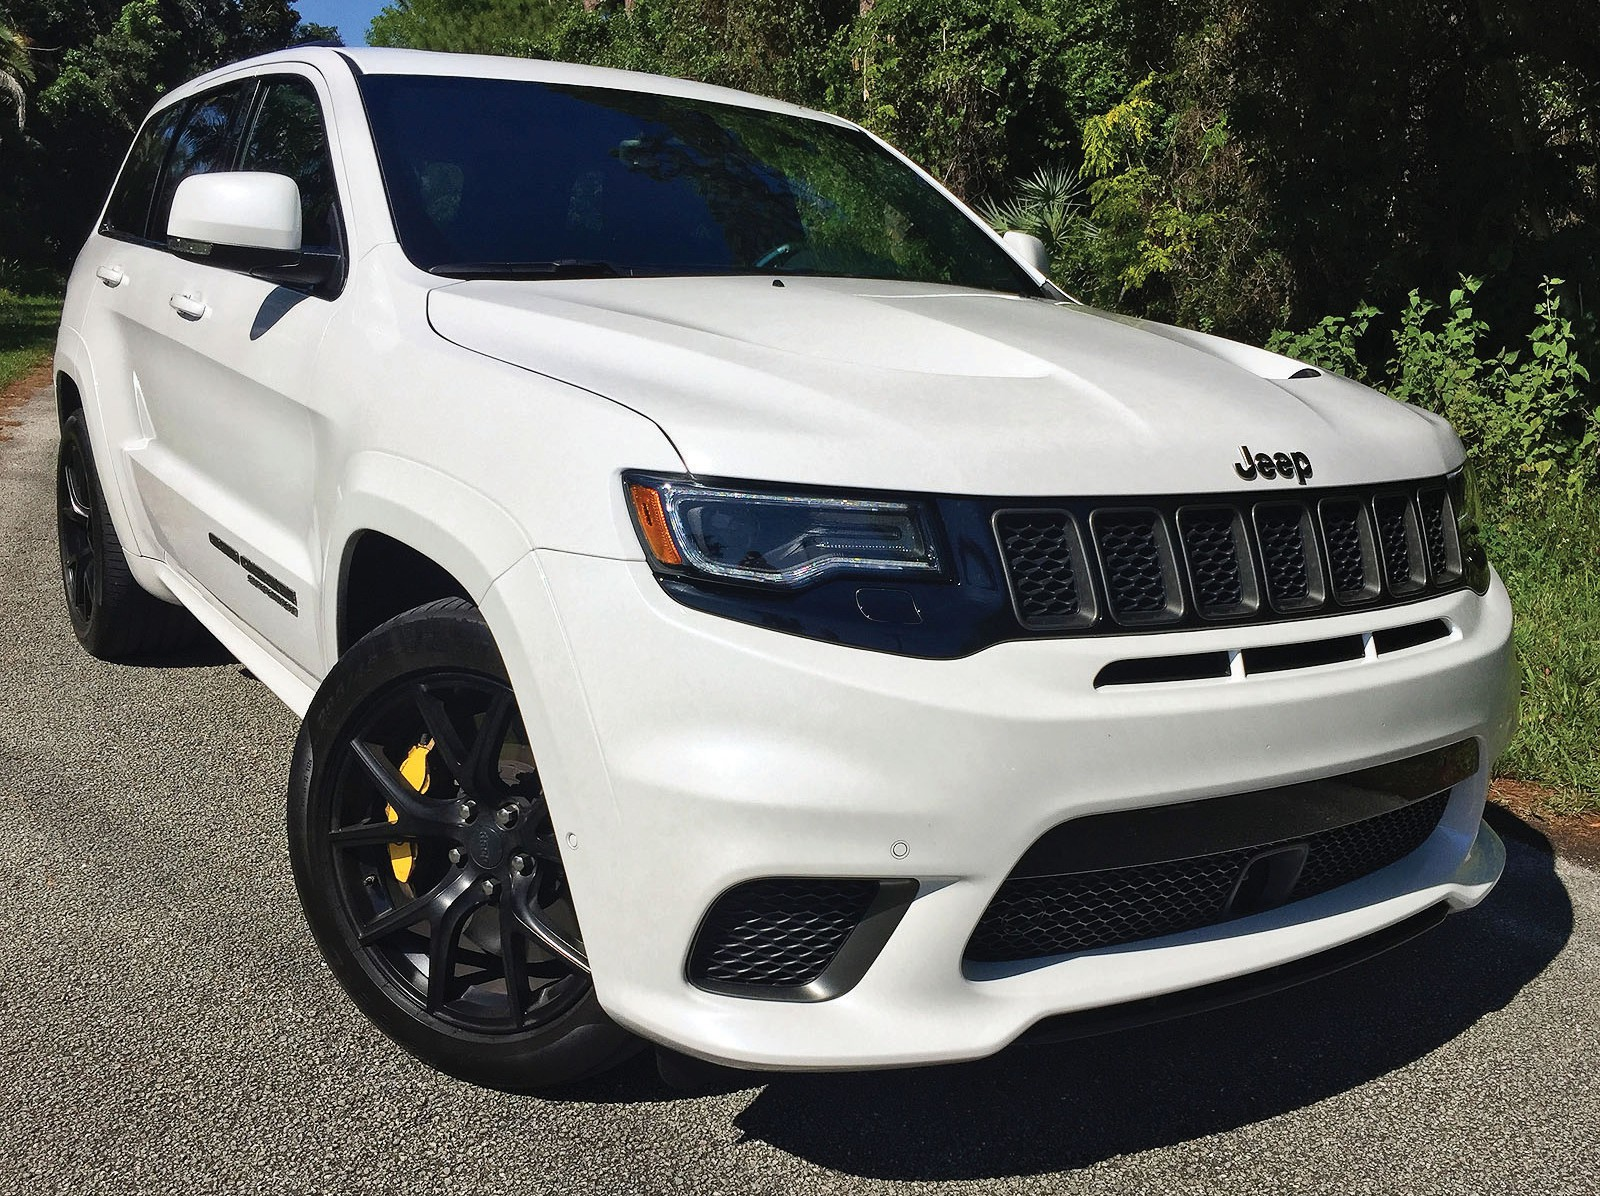 Jeep Grand Cherokee Trackhawk The Quickest Suv On The Planet Fort Myers Florida Weekly